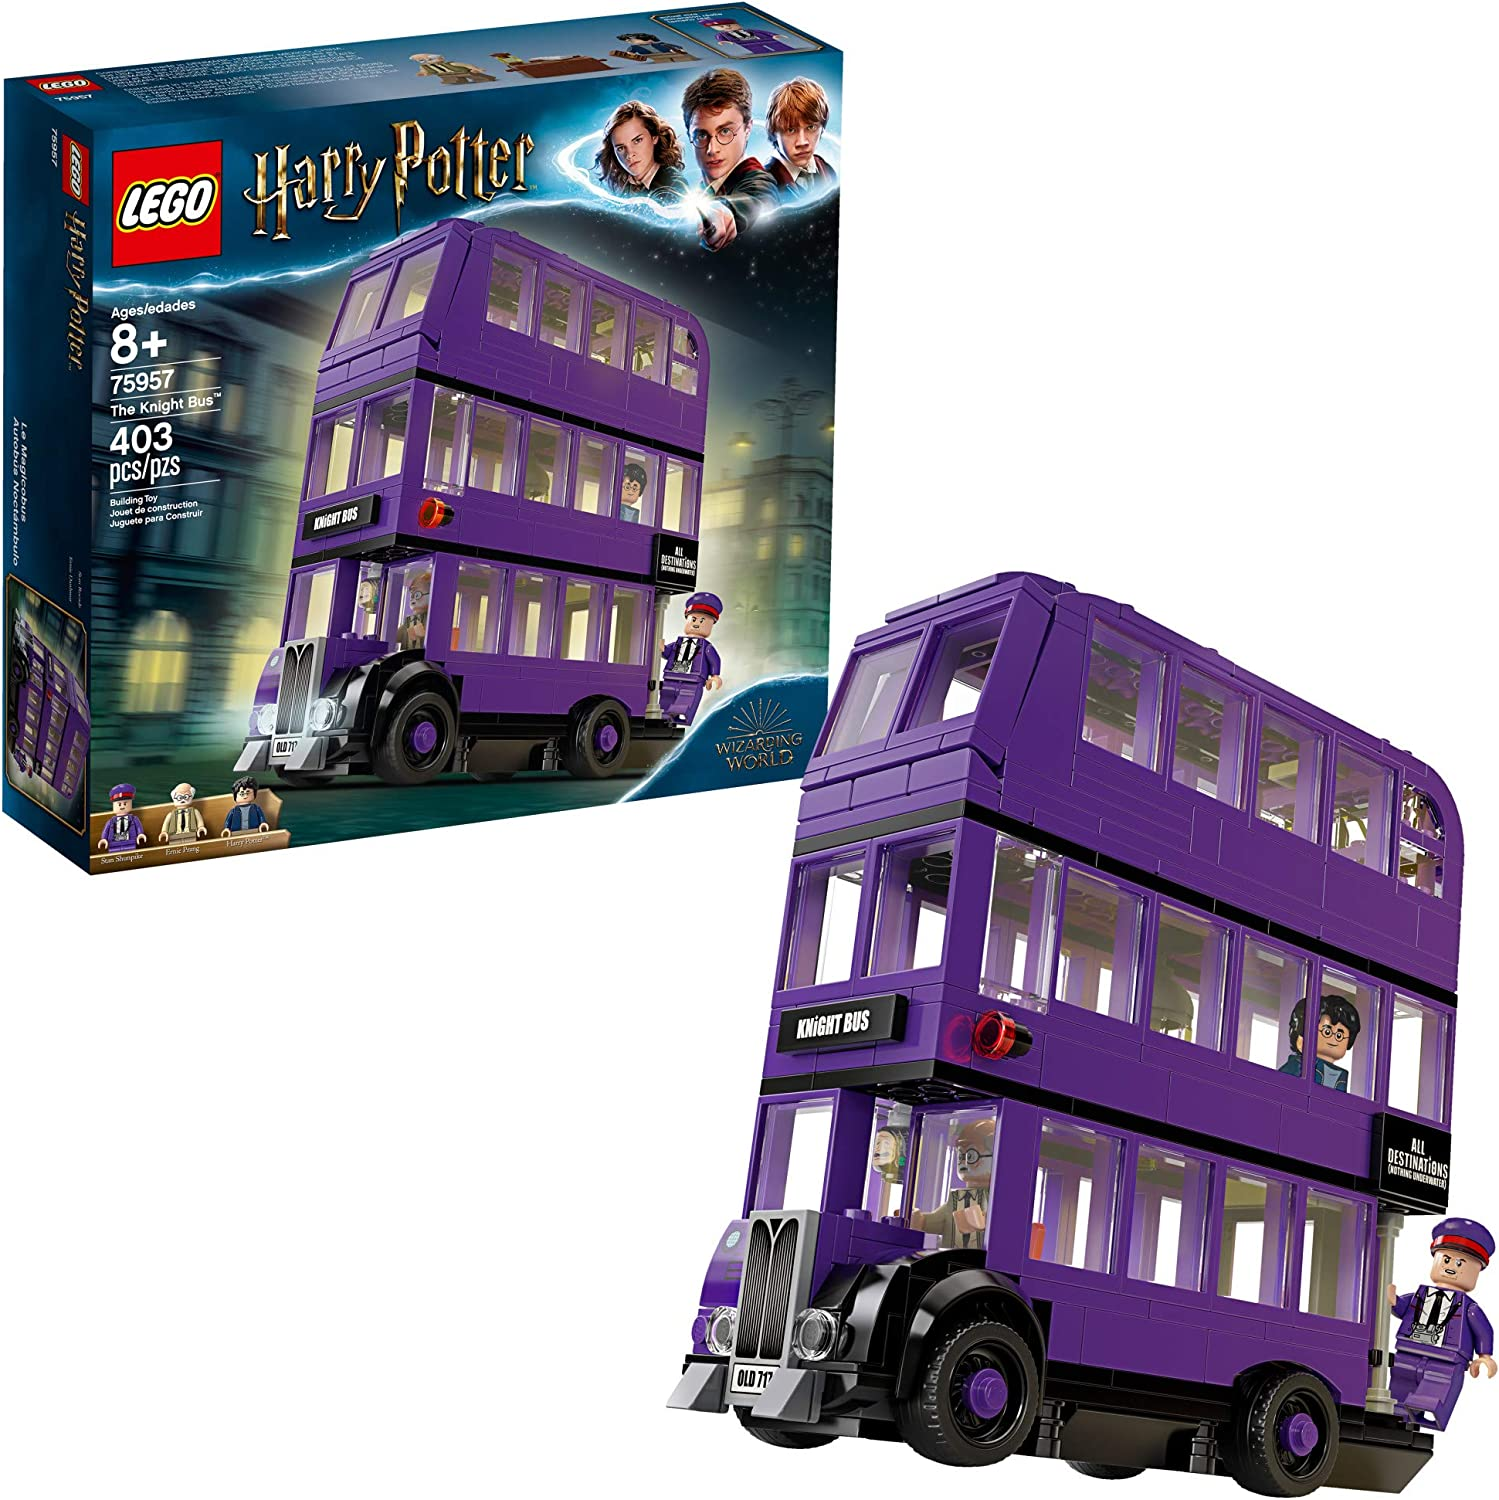 Lego Harry Potter And The Prisoner Of Azkaban Knight Bus 75957 Building Kit 403 Pieces Toys Games